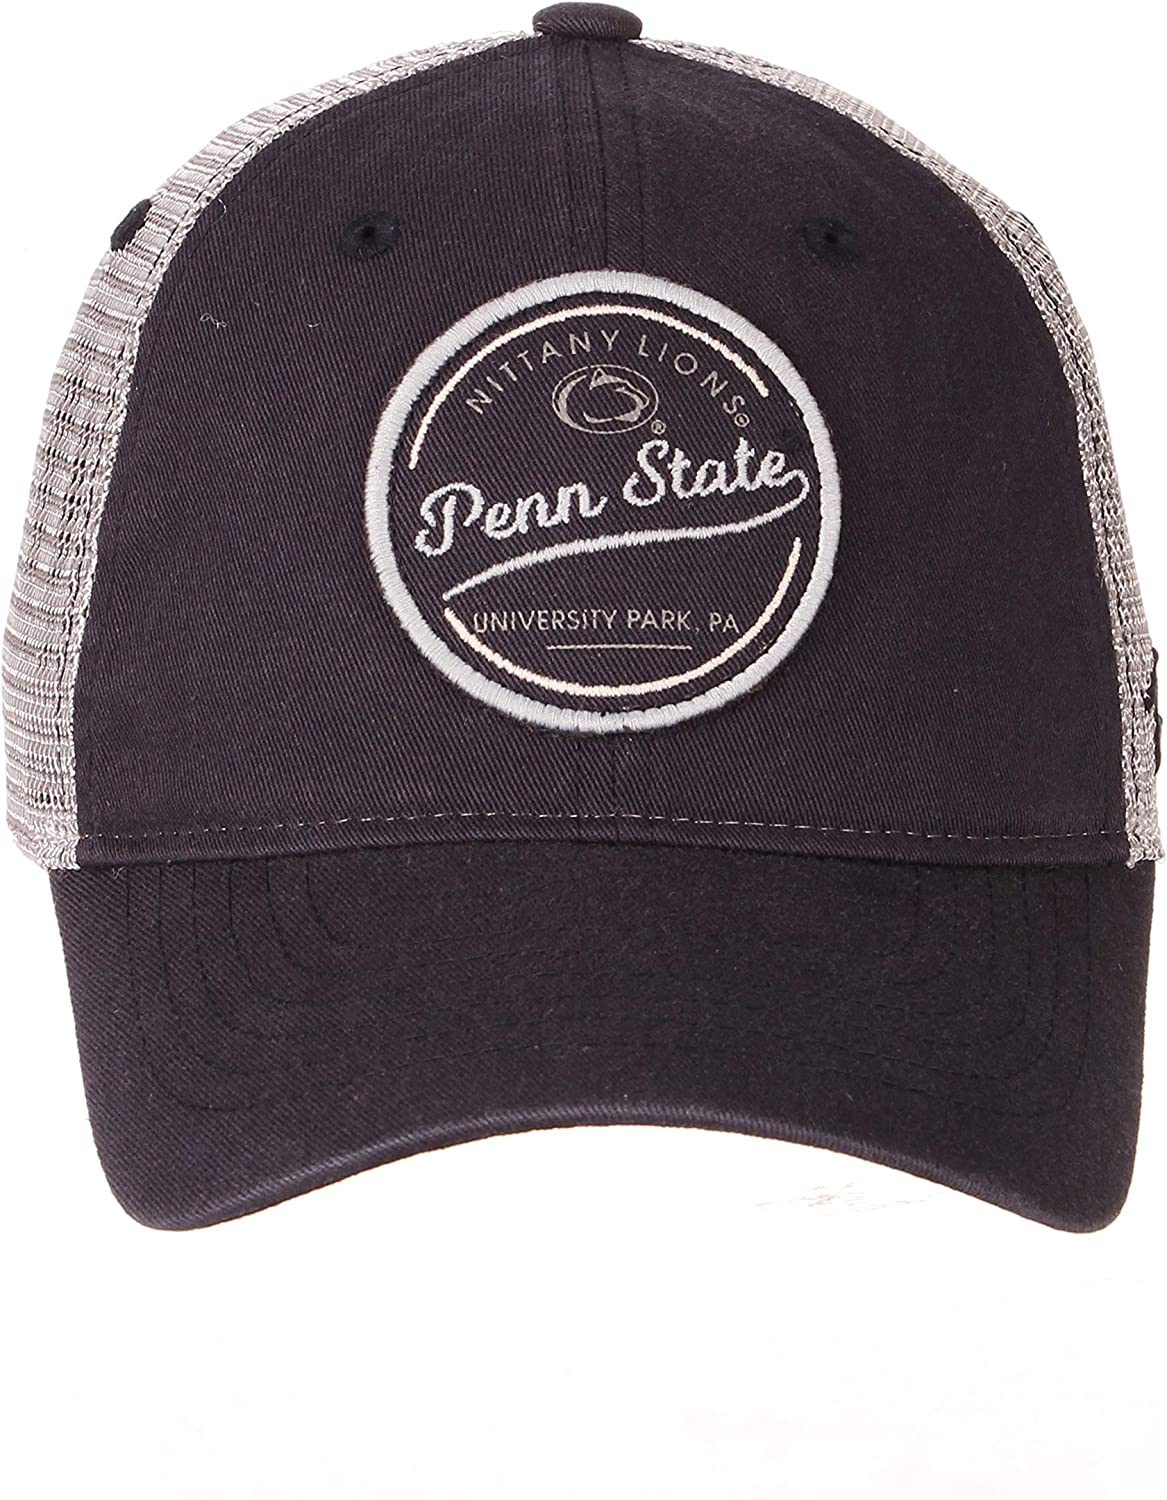 Adjustable NCAA Zephyr Penn State Nittany Lions Mens Lager Relaxed Hat Primary Team Color